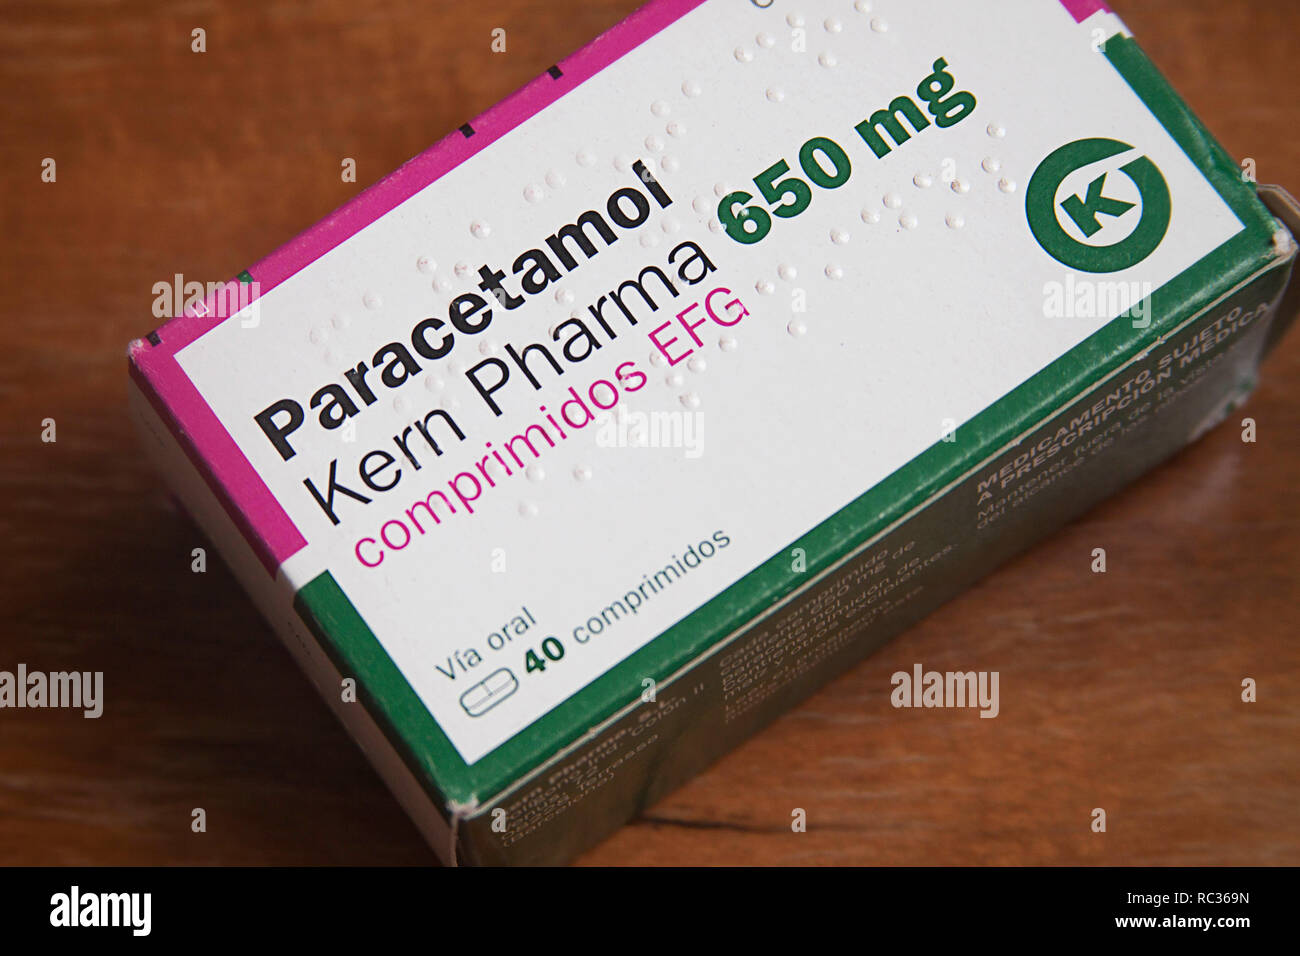 Paracetamol Box Stock Photos & Paracetamol Box Stock Images - Page 2